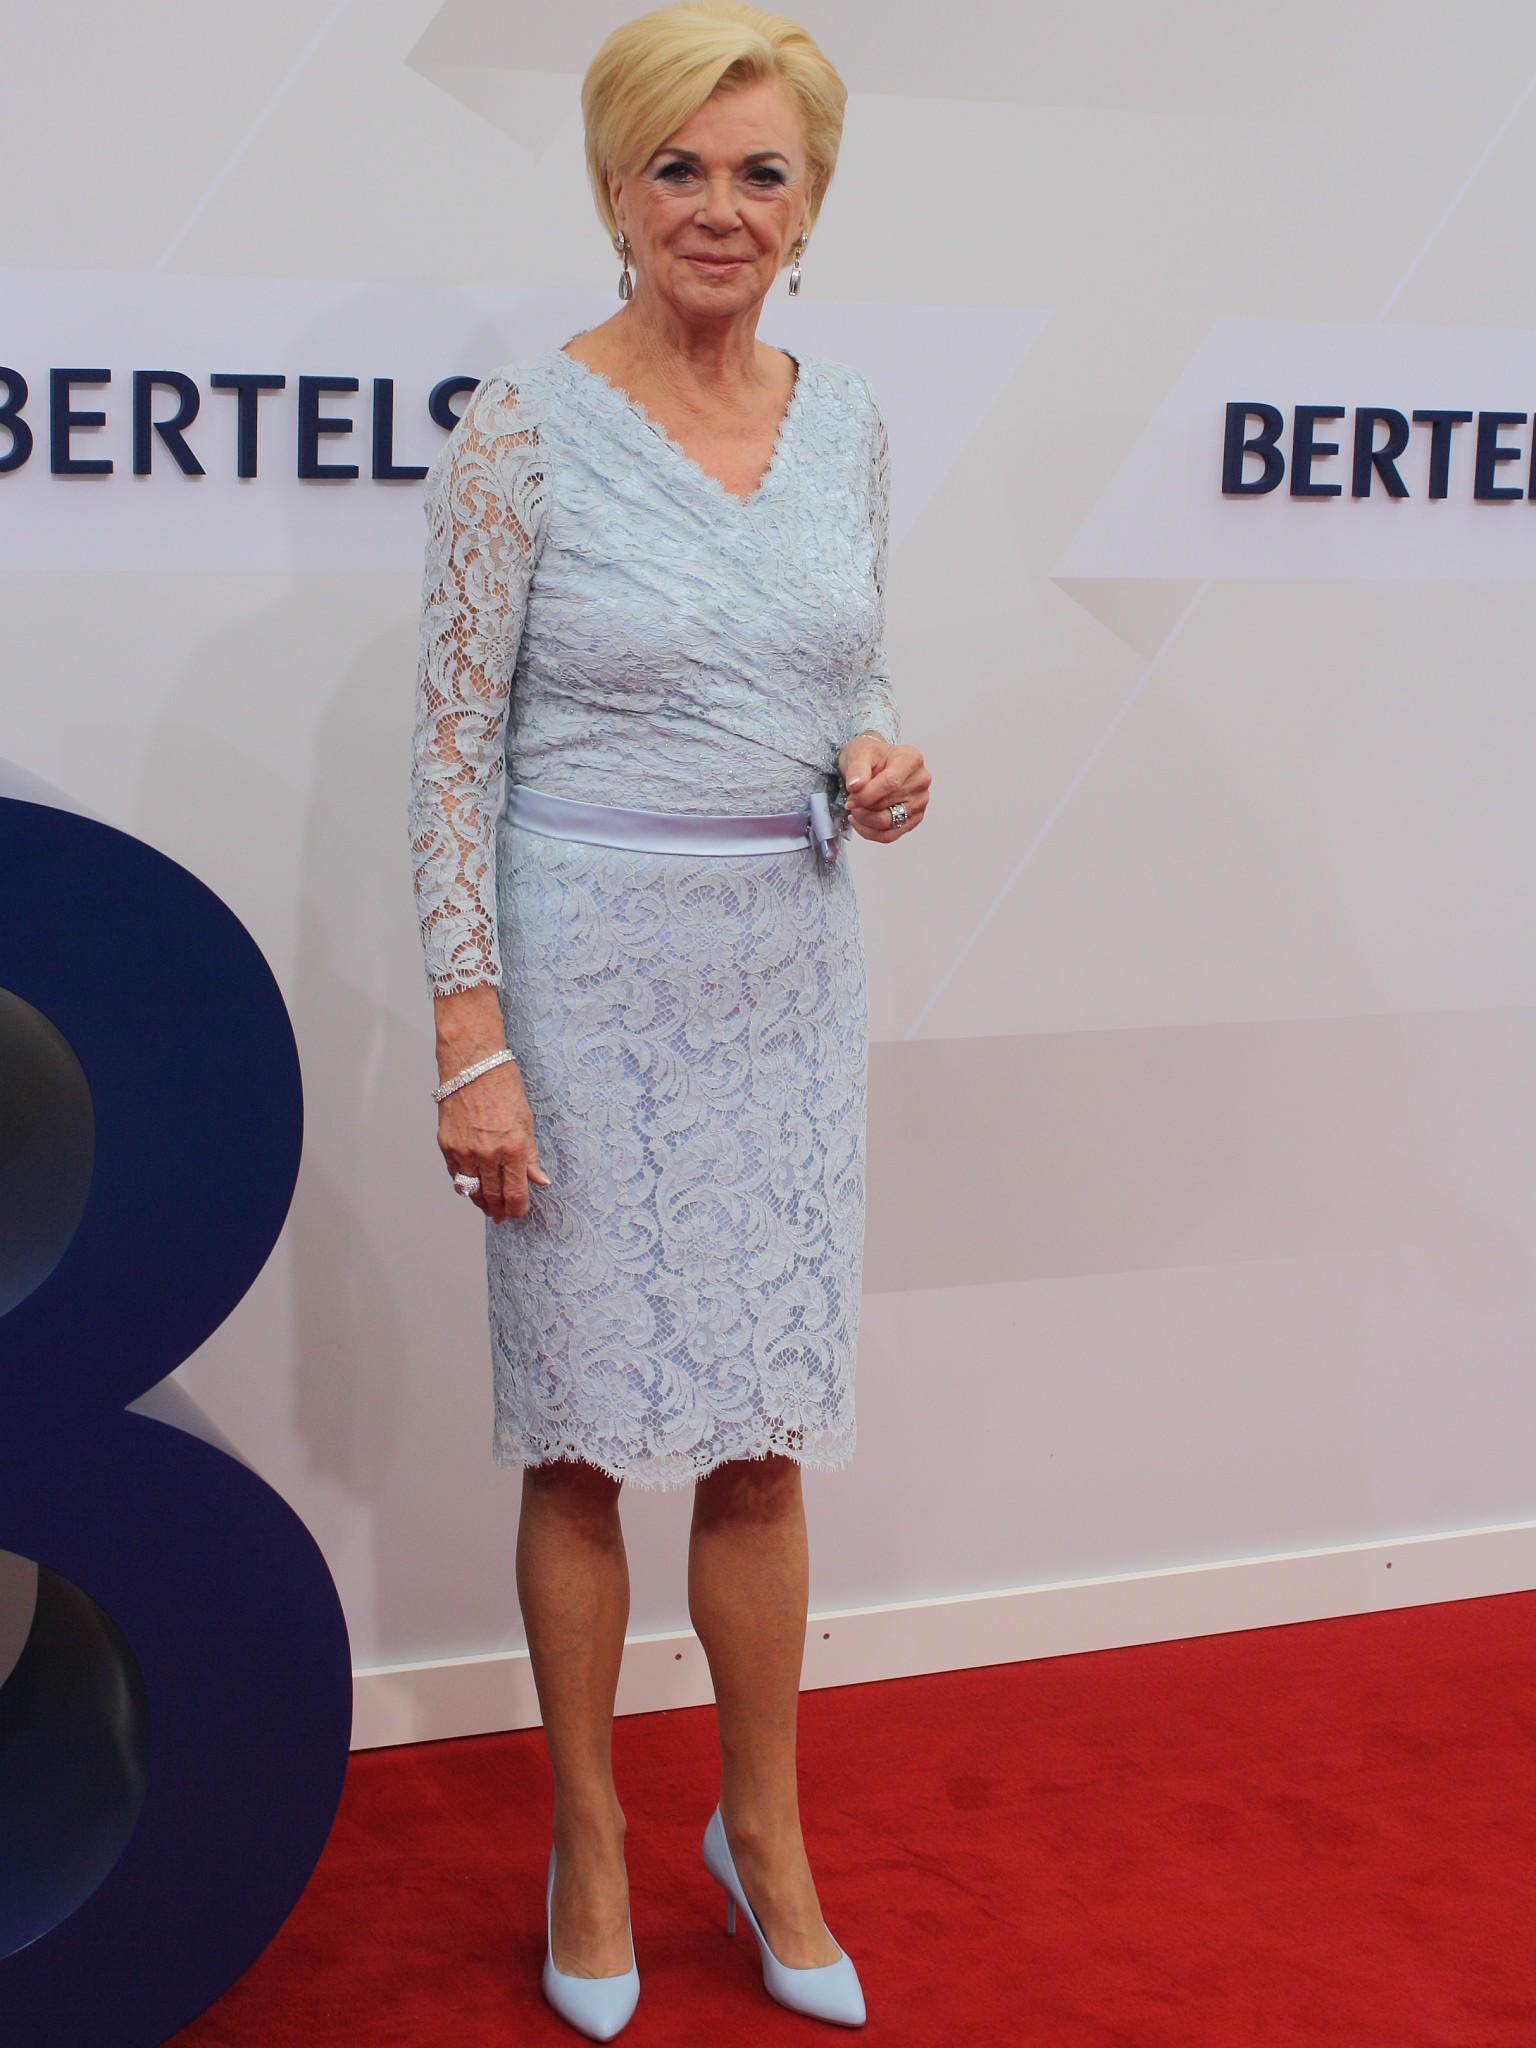 Bertelsmann-Party 2015